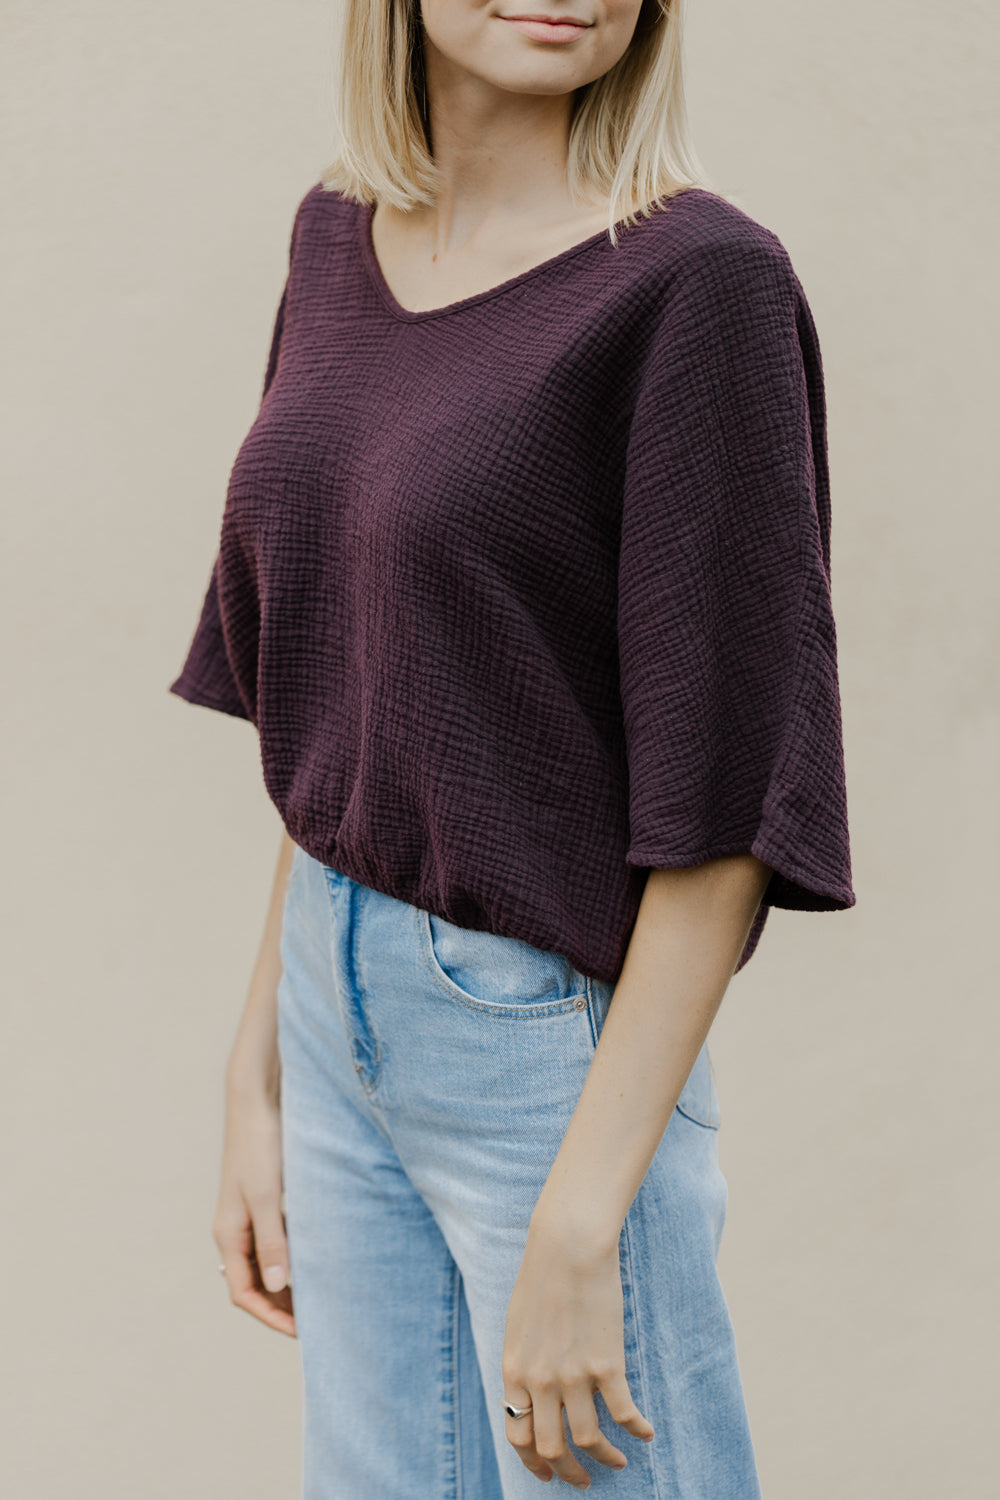 The Gauze Dolman Top in Eggplant